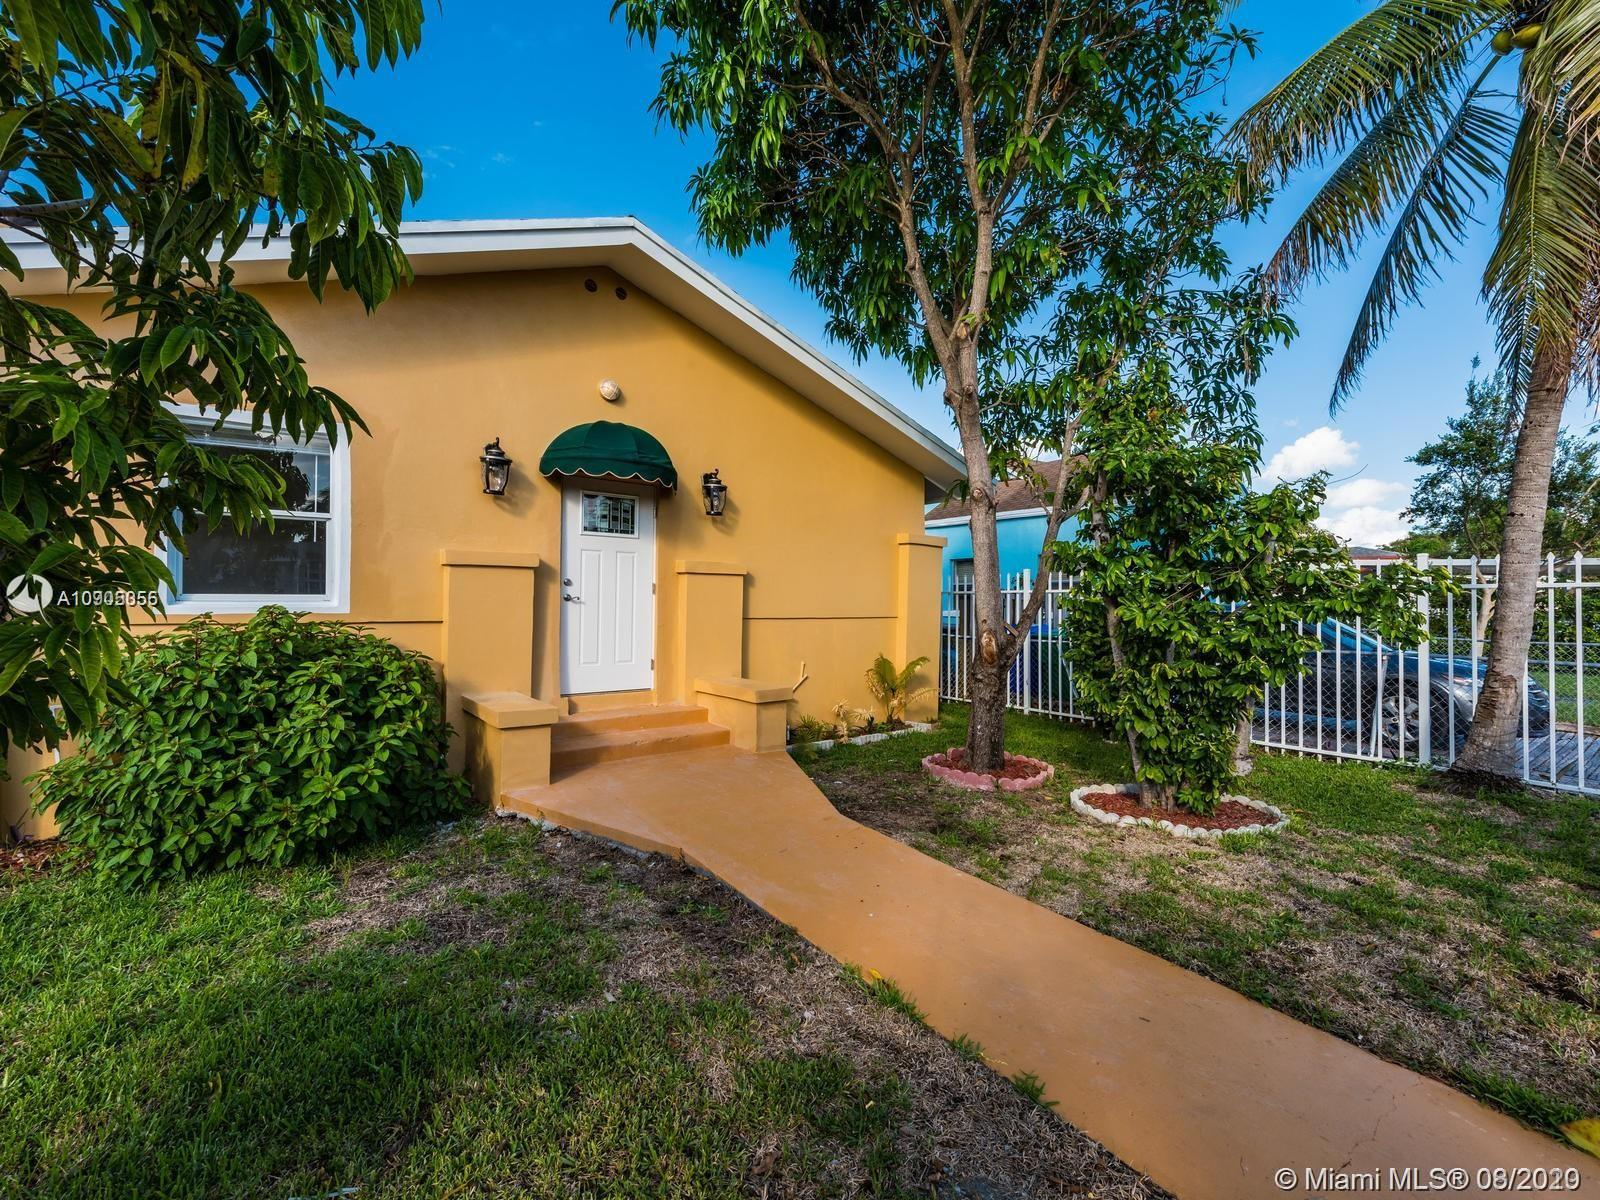 Details for 37 47th St, Miami, FL 33127